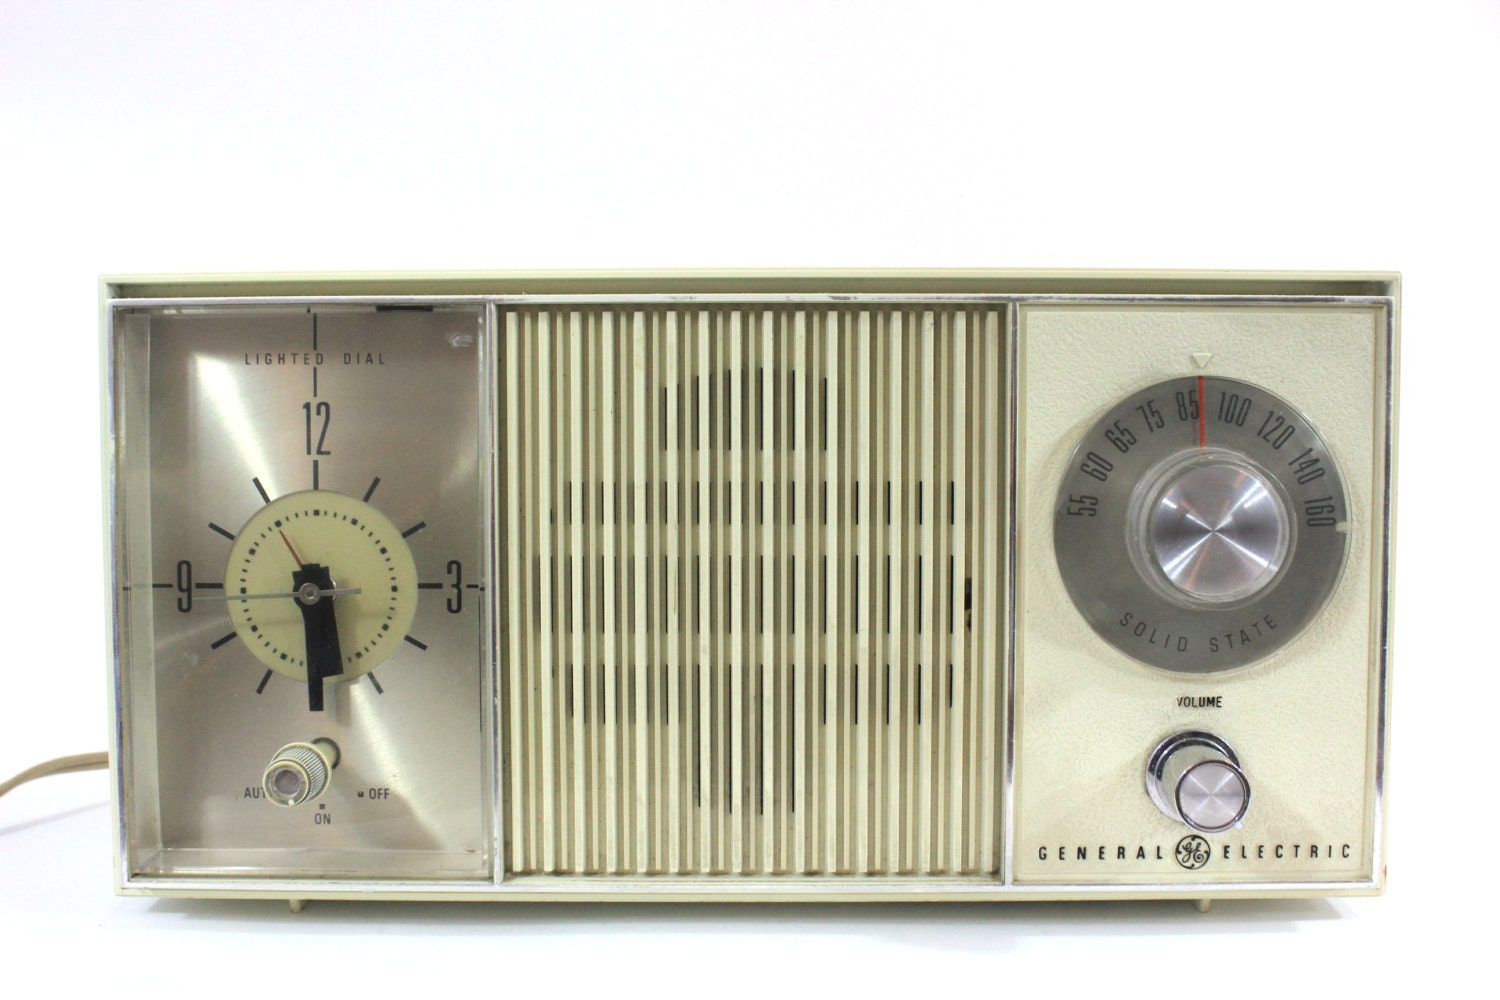 general electric vintage clock radio - Music Search Engine ...